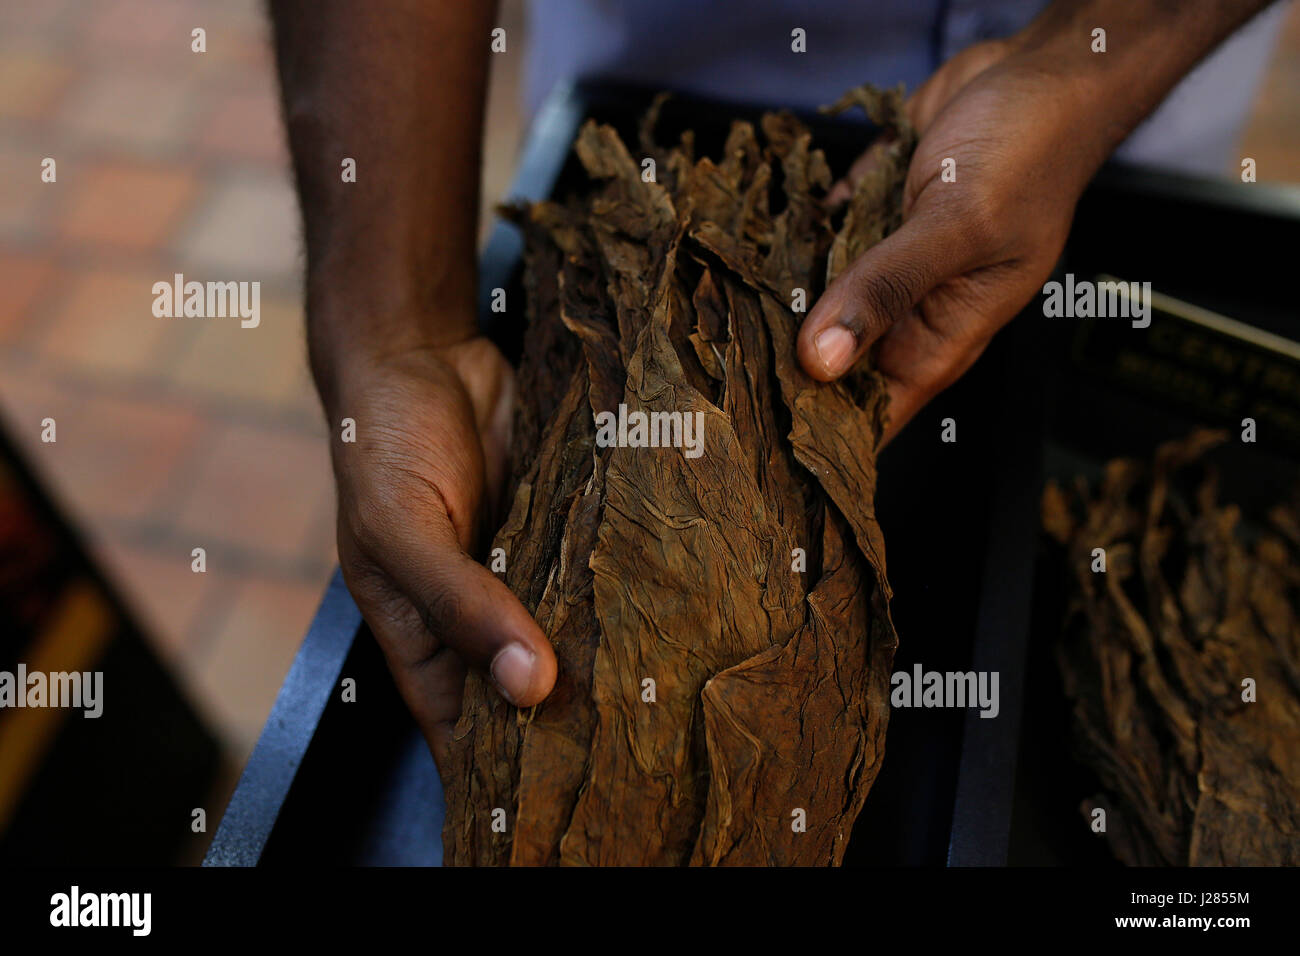 Cropped hands of man holding tobacco leaves in workshop - Stock Image